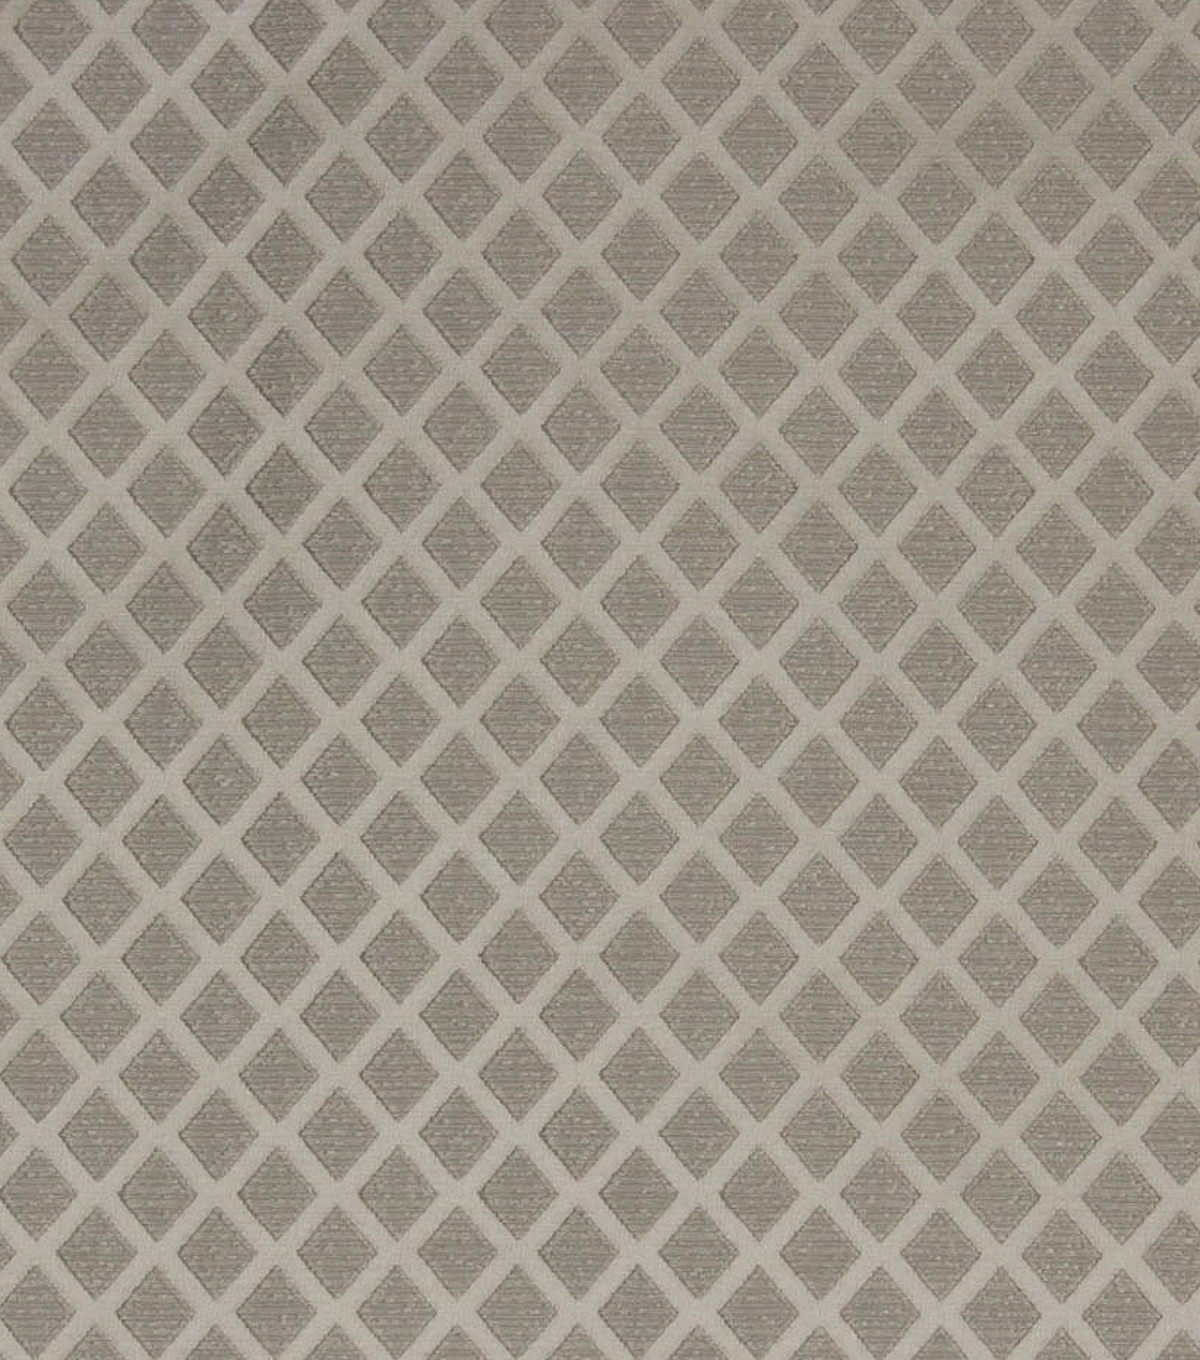 Richloom Studio Lightweight Decor Lightweight Decor Fabric 54\u0022-Diamond Silver